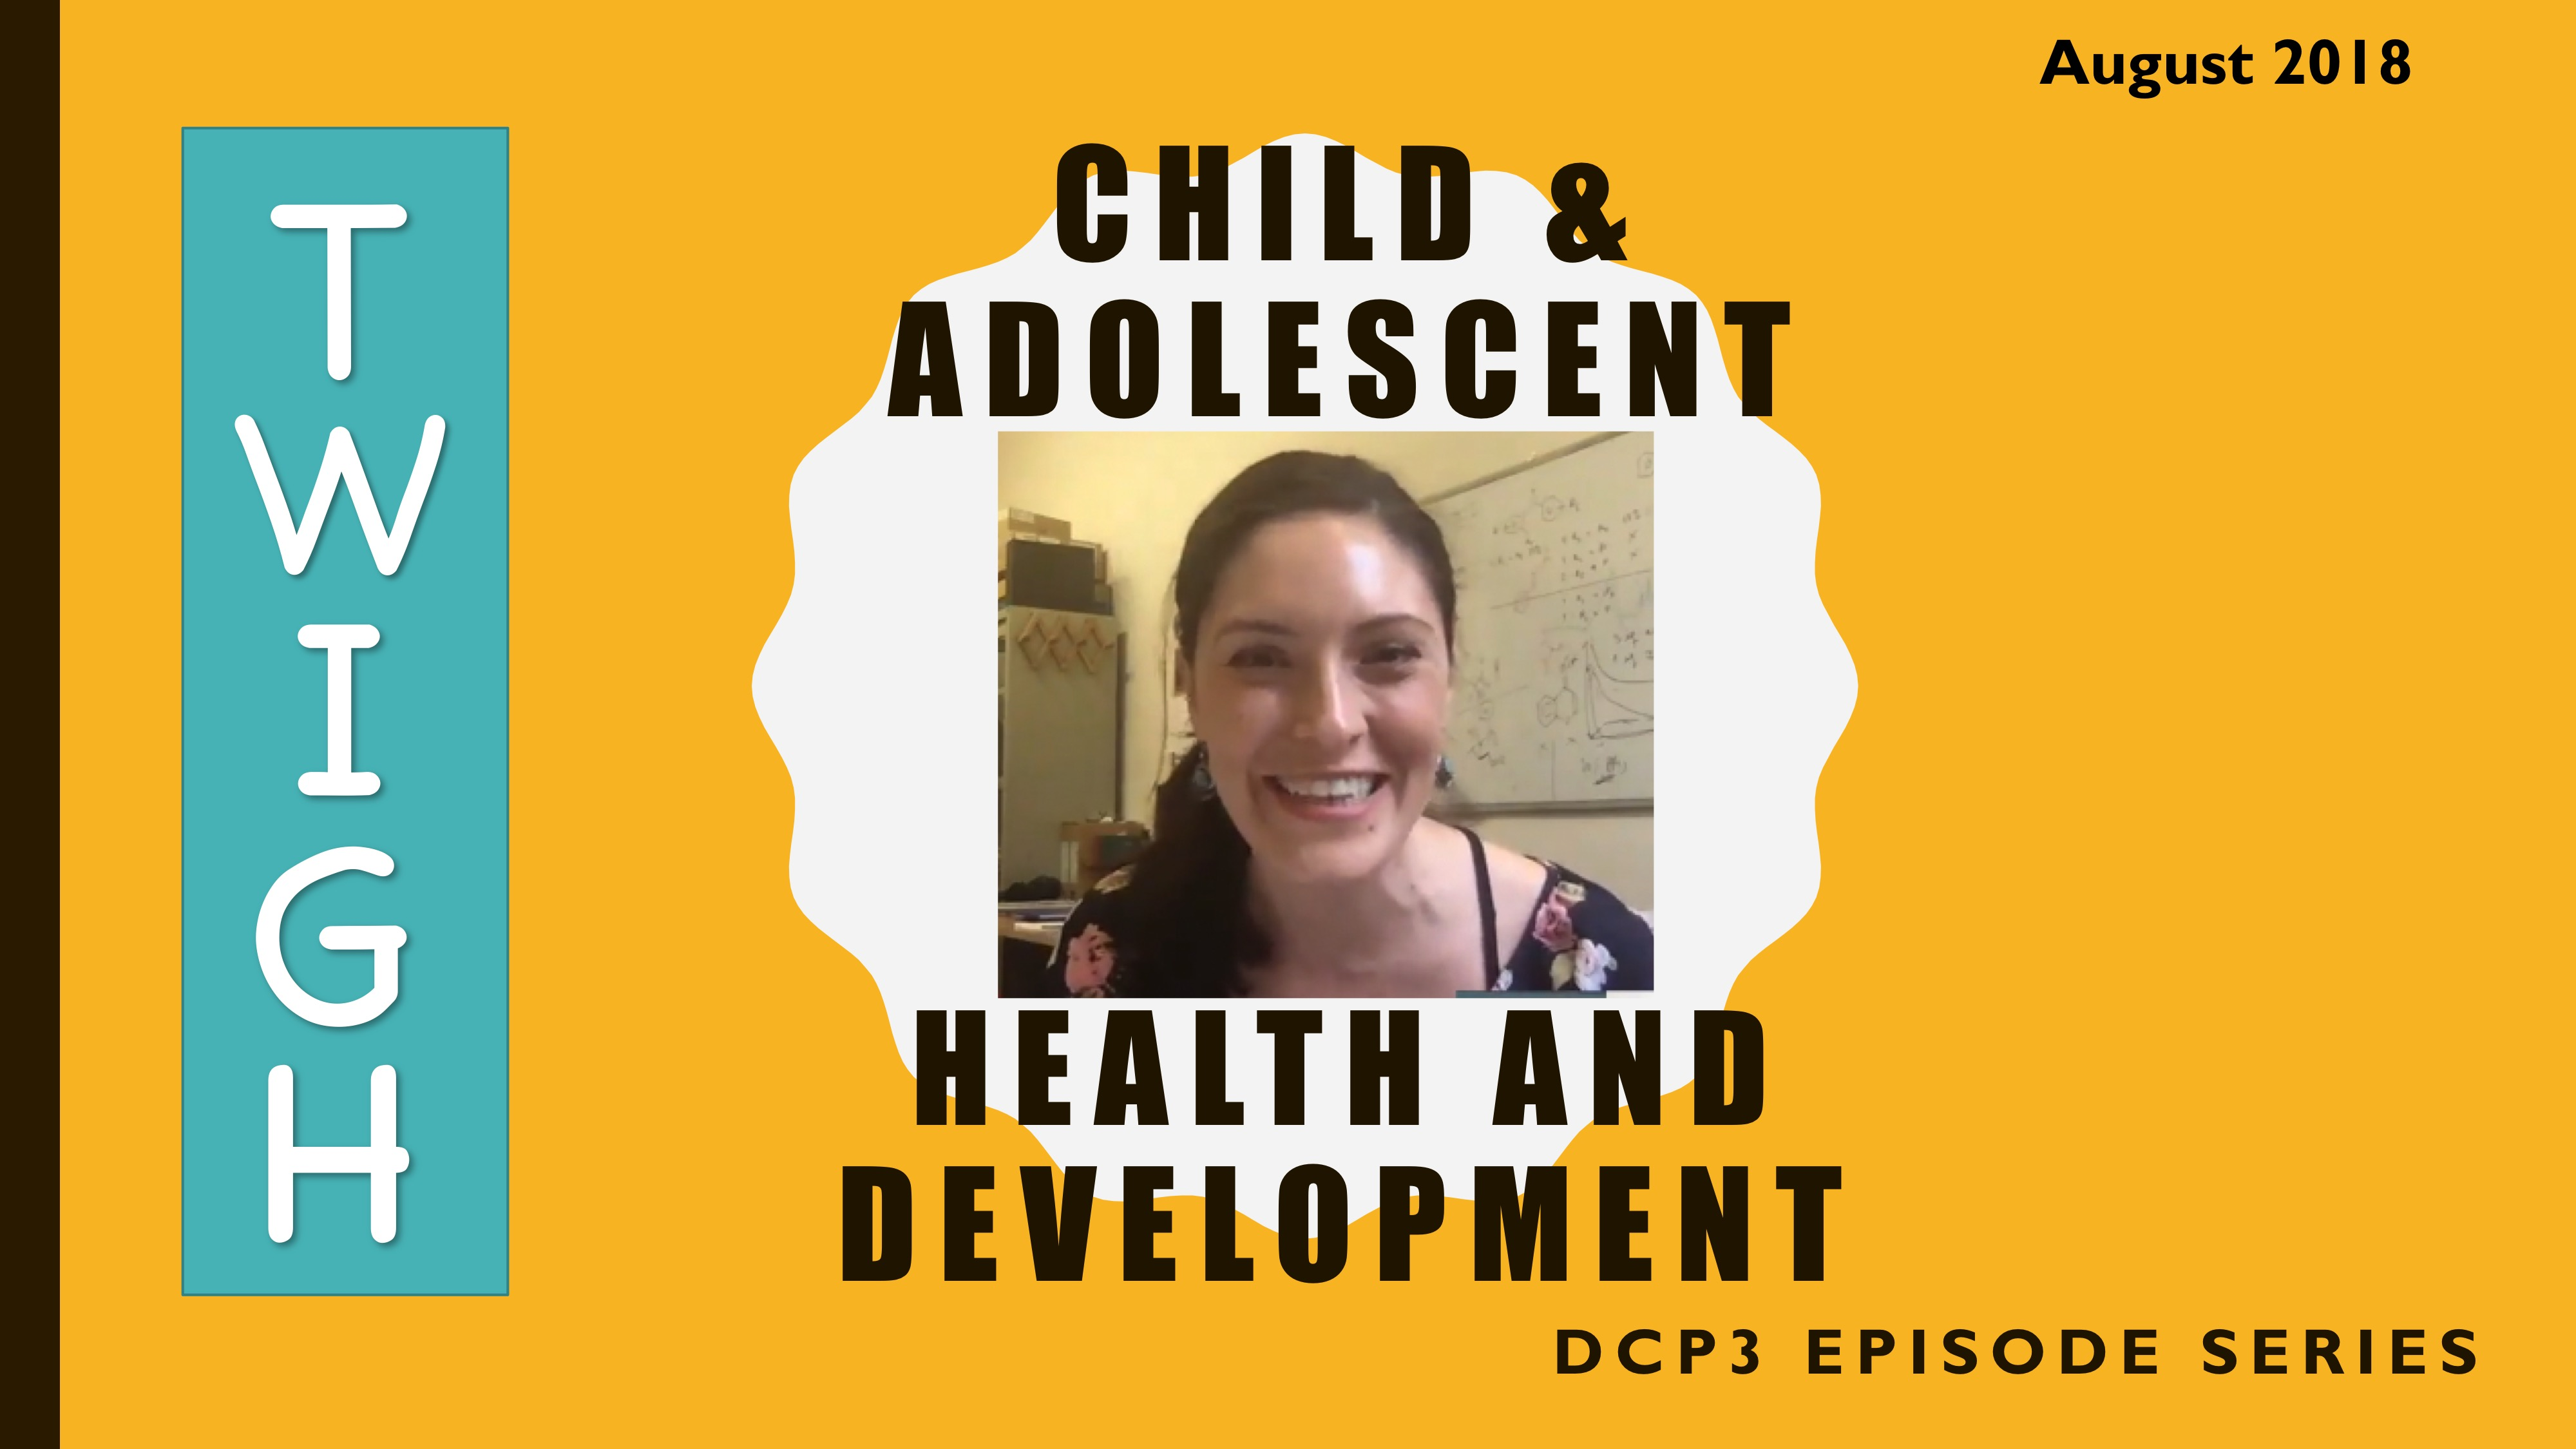 TWiGH/DCP3 Series: Child and Adolescent Health and Development